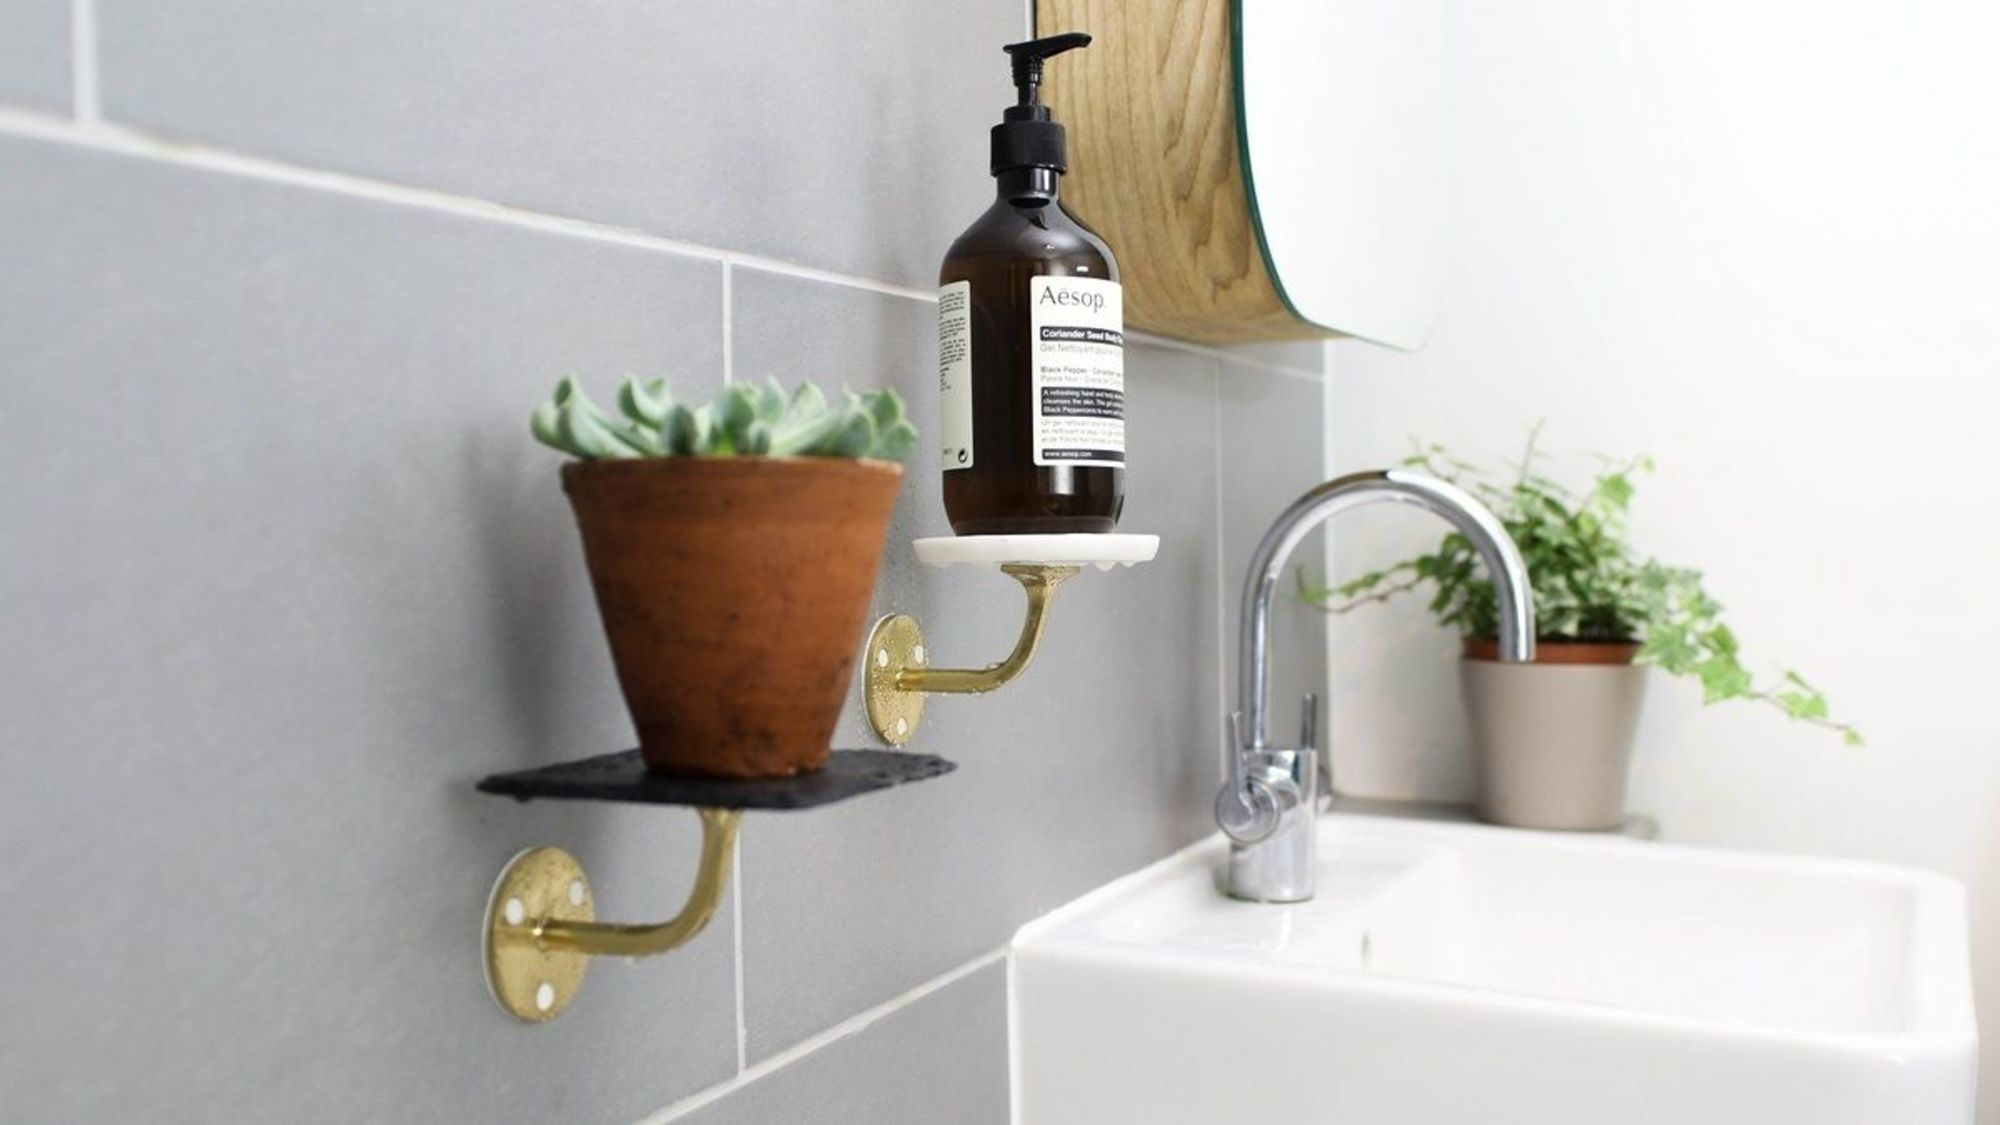 How to create bathroom shelves without drilling | Sugru